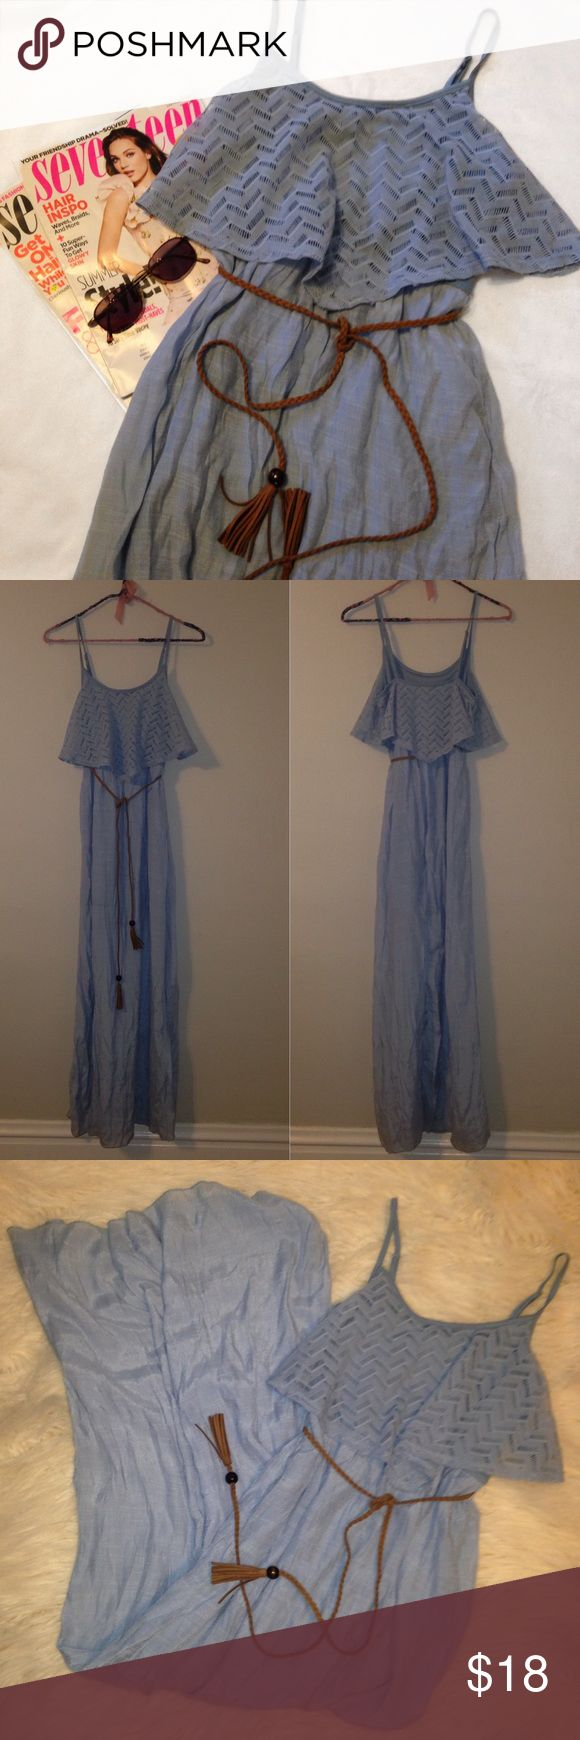 Lace Powder Blue Maxi Dress Brand ; Charlotte Russe  Size ; XS / extra small  Description ; maxi dress with lace chevron top, comes with belt!   Selling dress only! Sunglasses & magazines are not included! Charlotte Russe Dresses Maxi